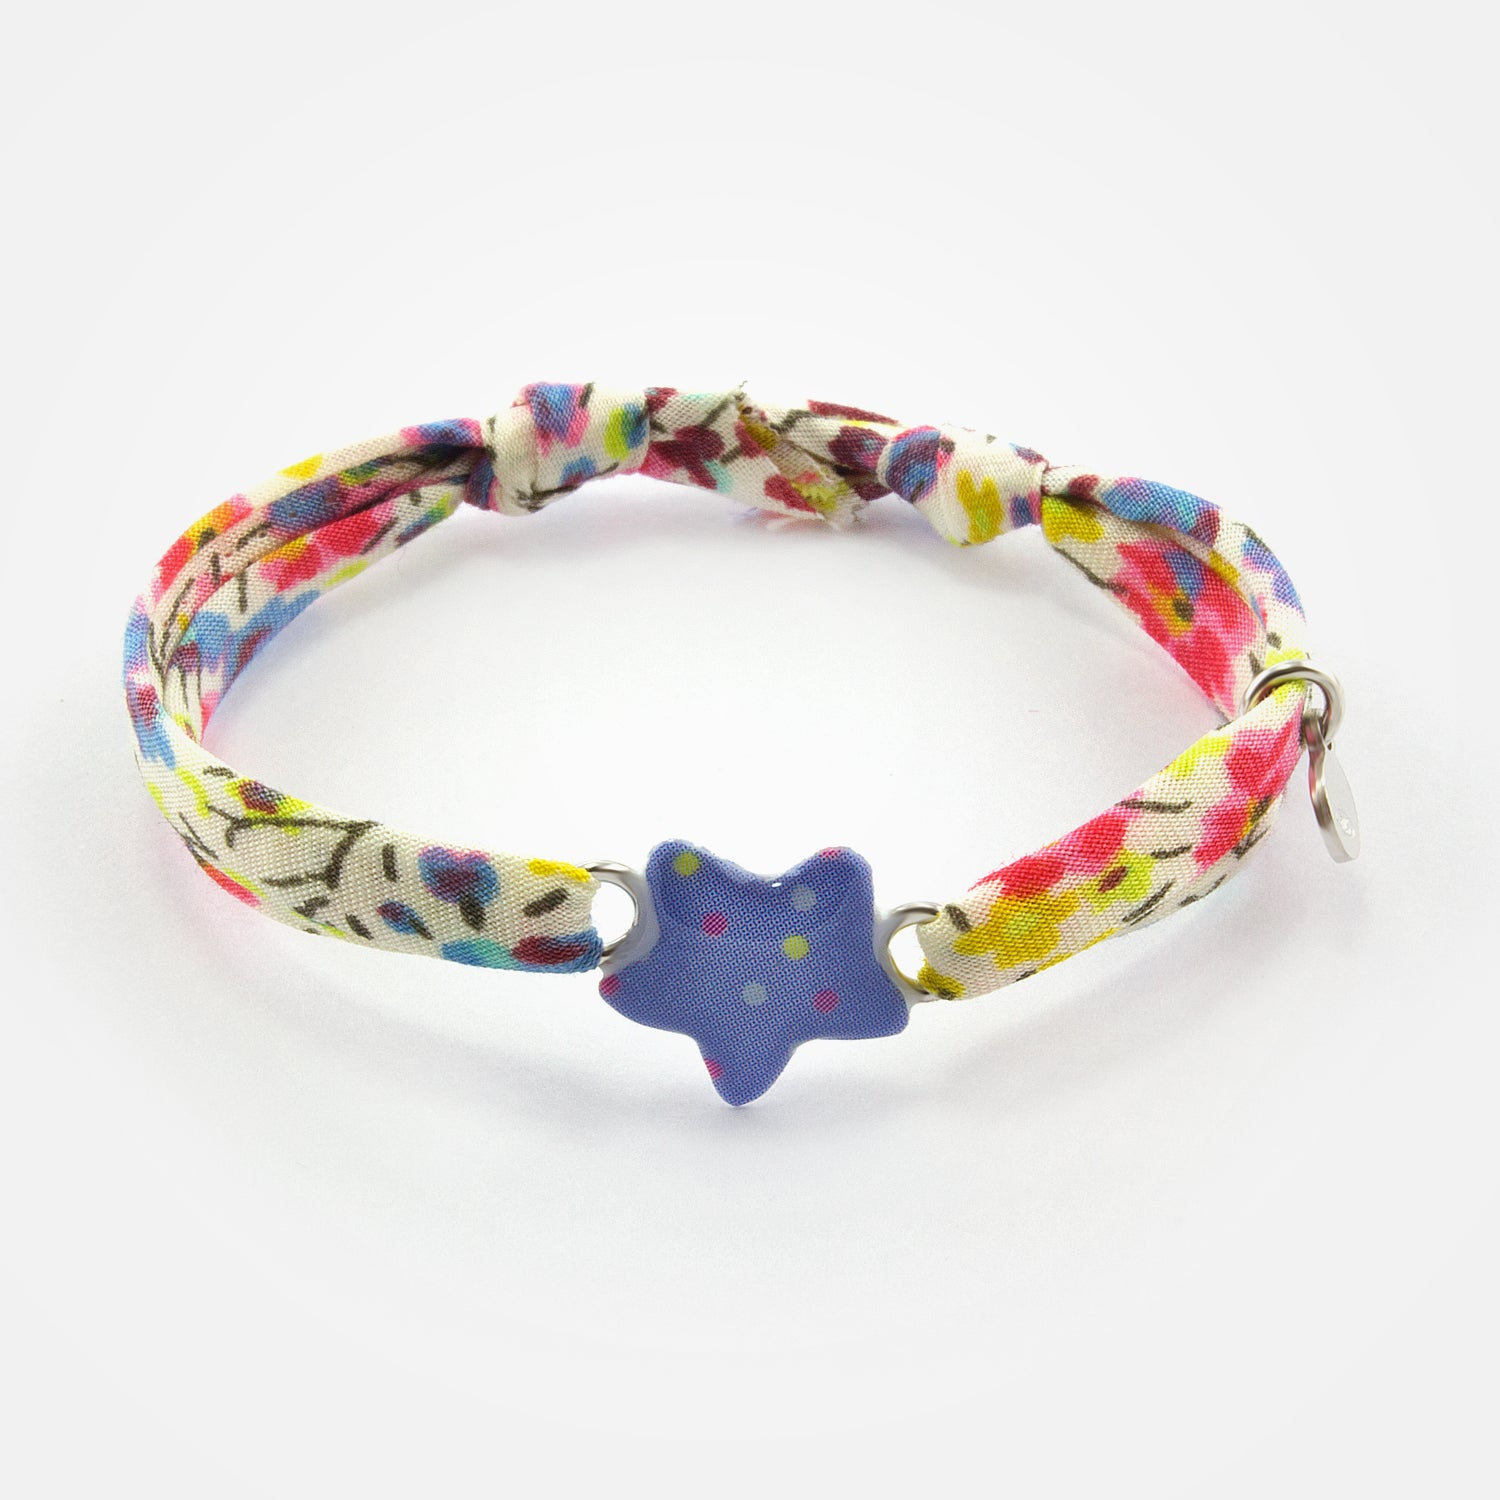 Star Ribbon Bracelet by Ribambelle